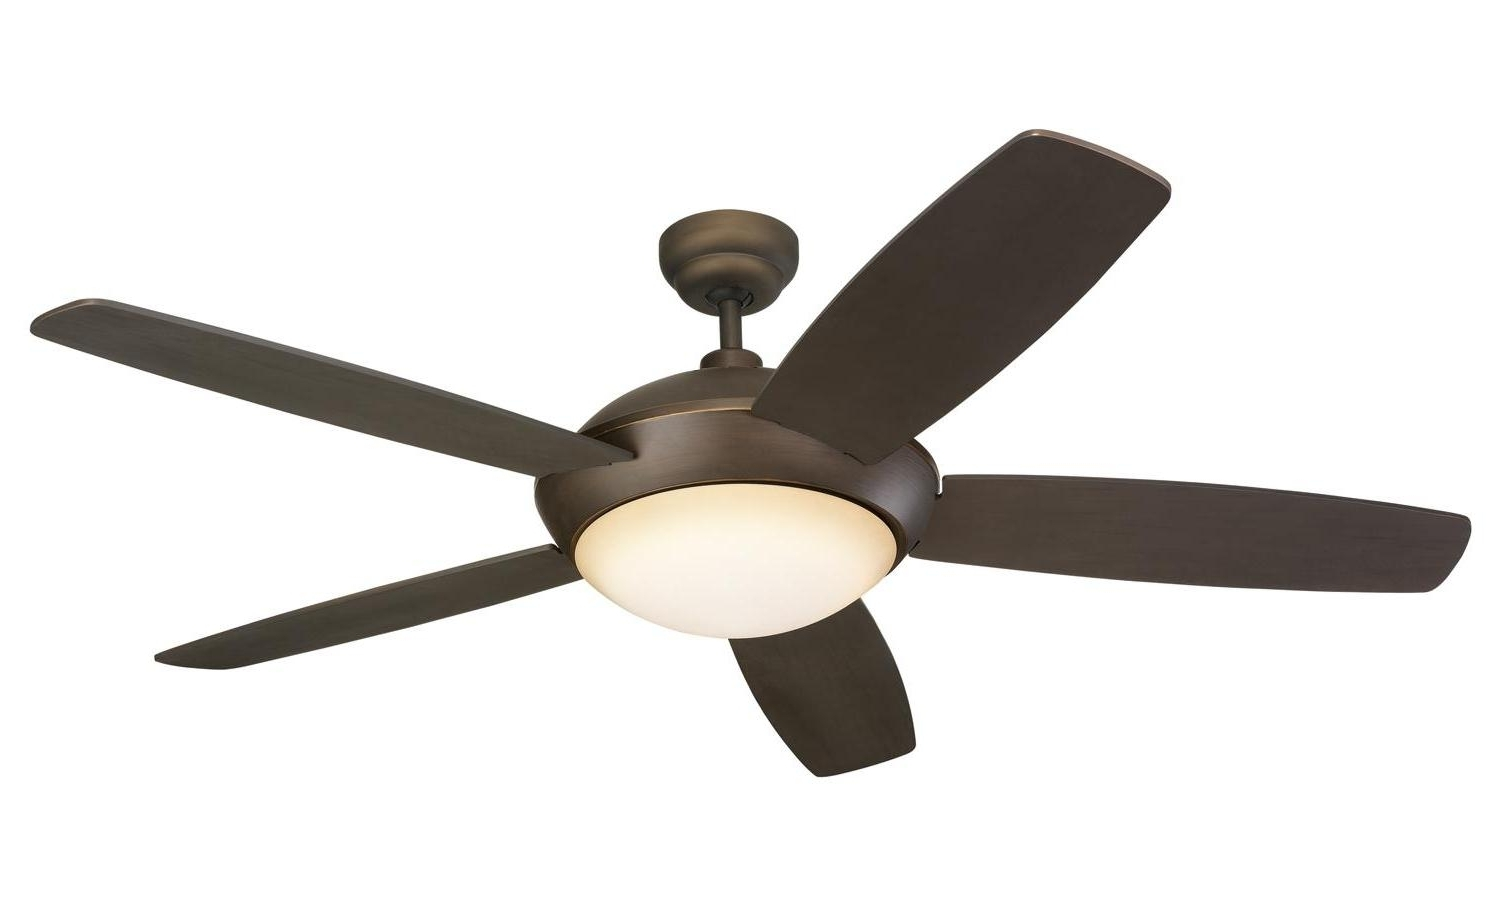 2018 Outdoor Ceiling Fans With Remote And Light Inside Functional Ceiling Fans With Lights And Remote (Gallery 5 of 20)